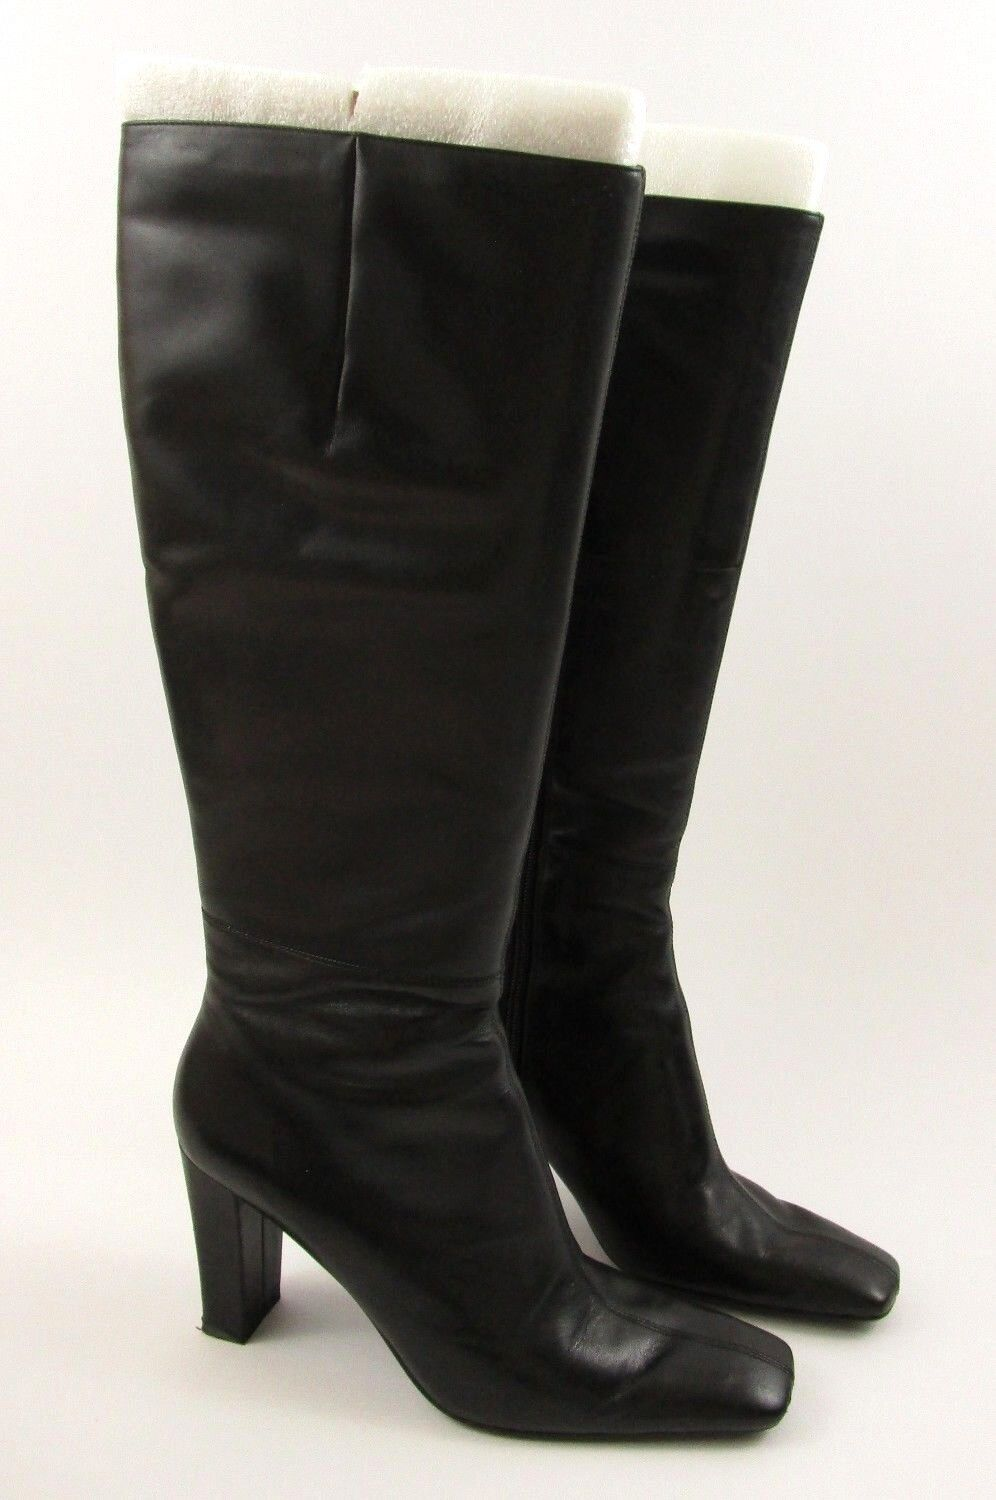 Bandolino Womens Riding Boots Black Leather Size 8.5 M US Joreen Knee High 145